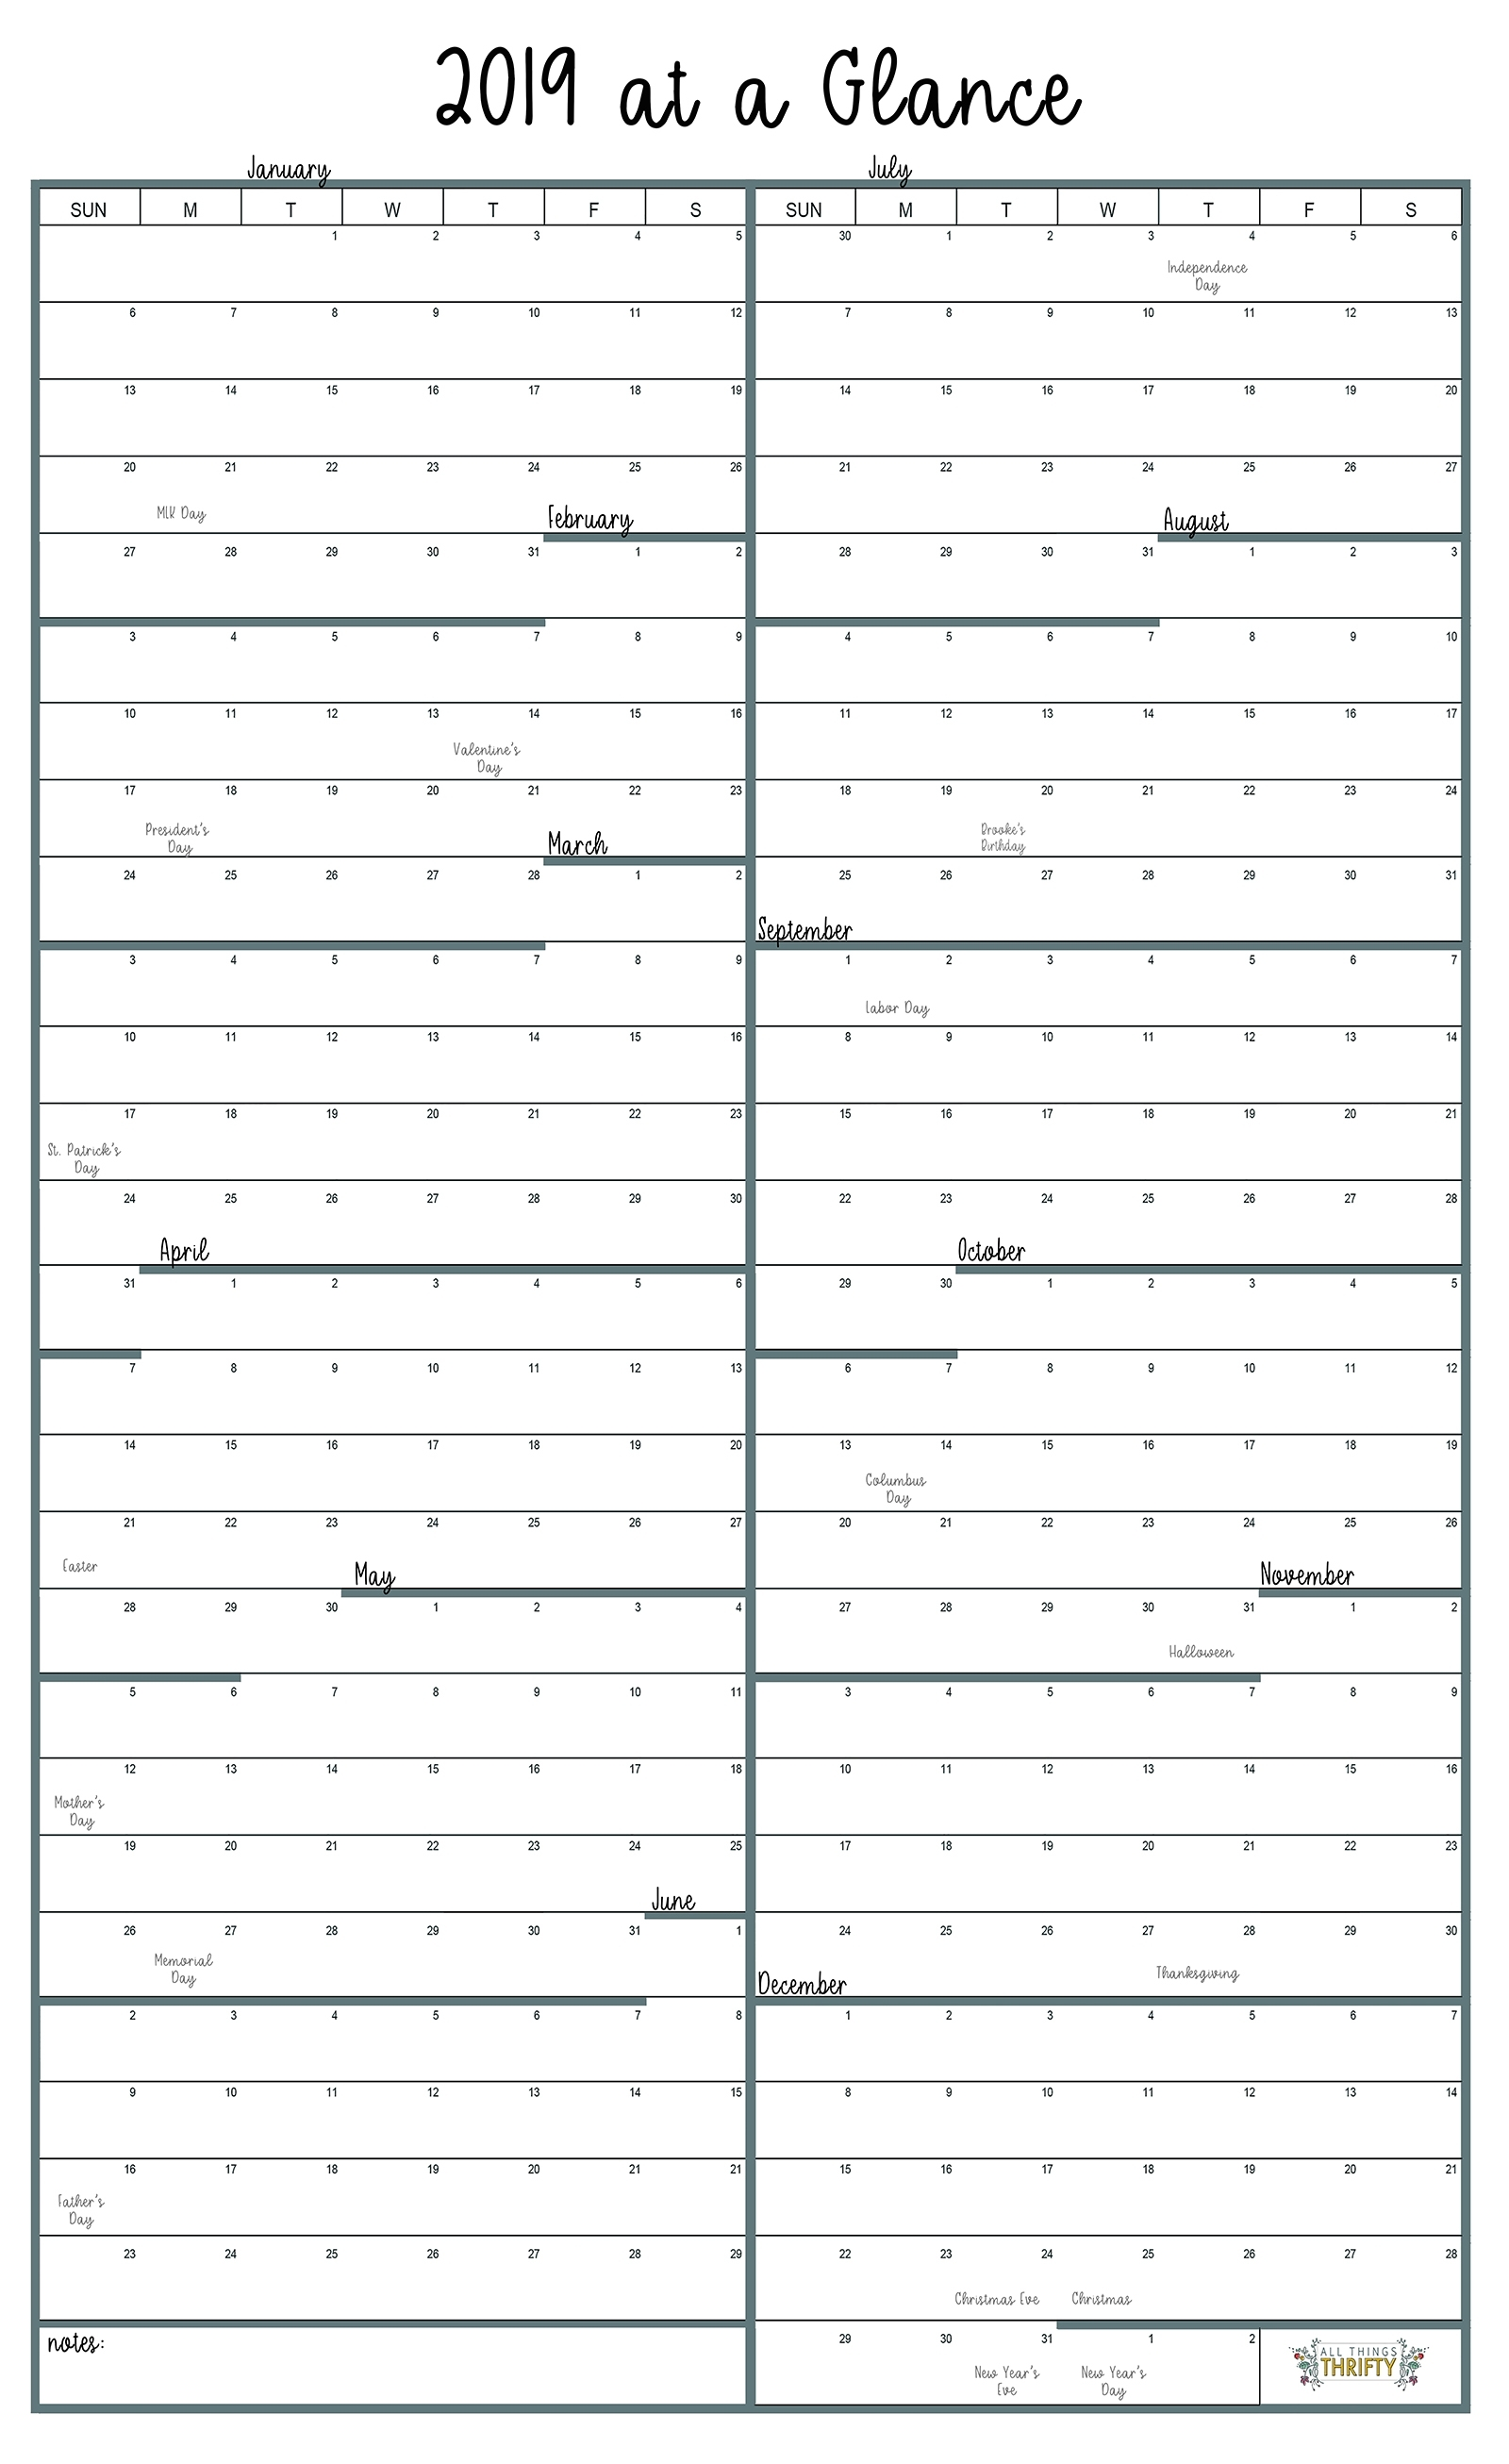 Year At A Glance Free Printable Calendar | All Things Thrifty within Year At A Glance Calendar Simple Design